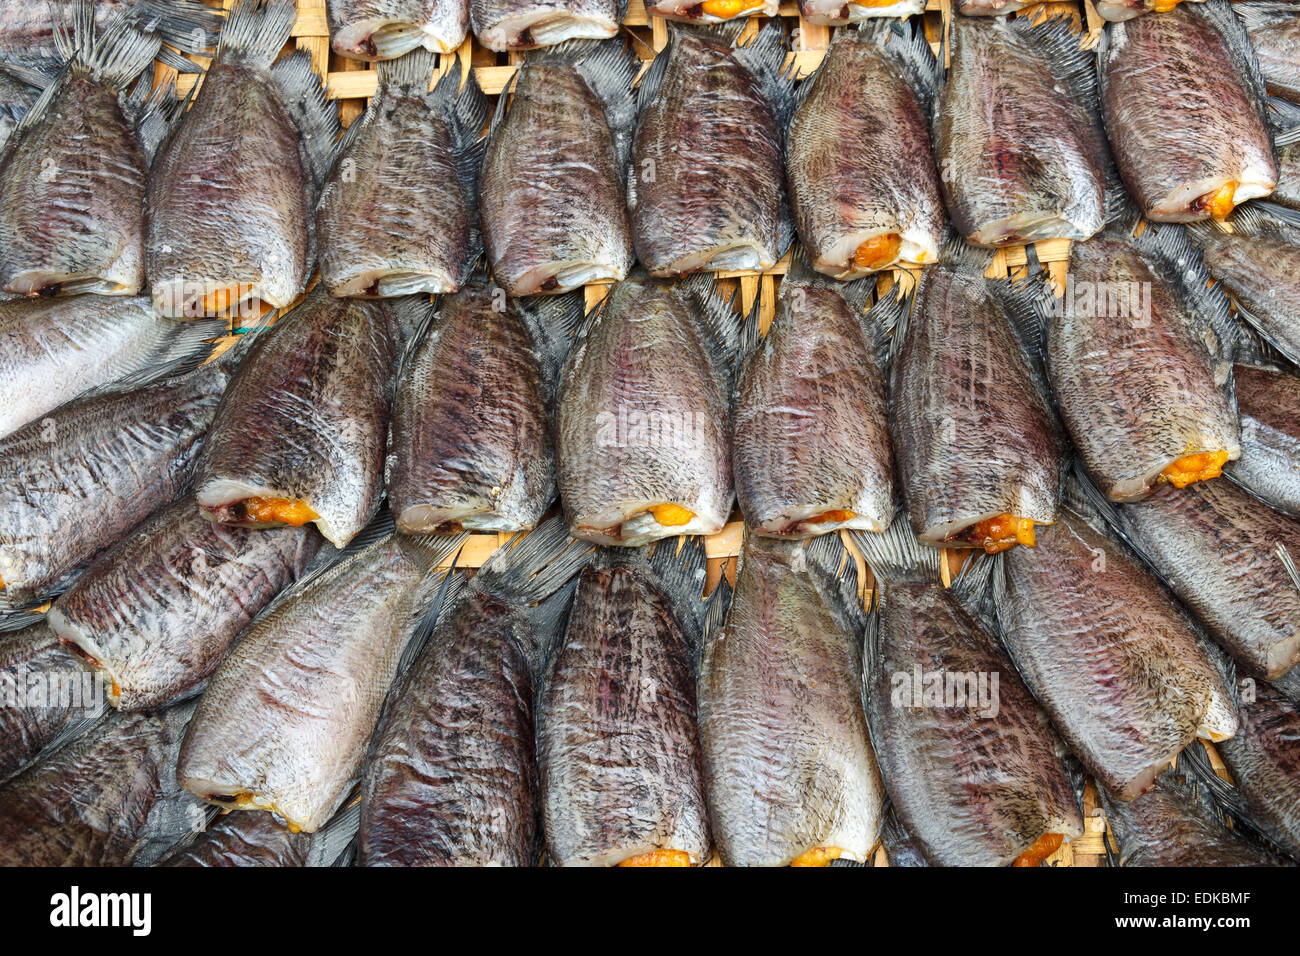 Fishes (Trichogaster pectoralis) arrange on rattan in market - Stock Image